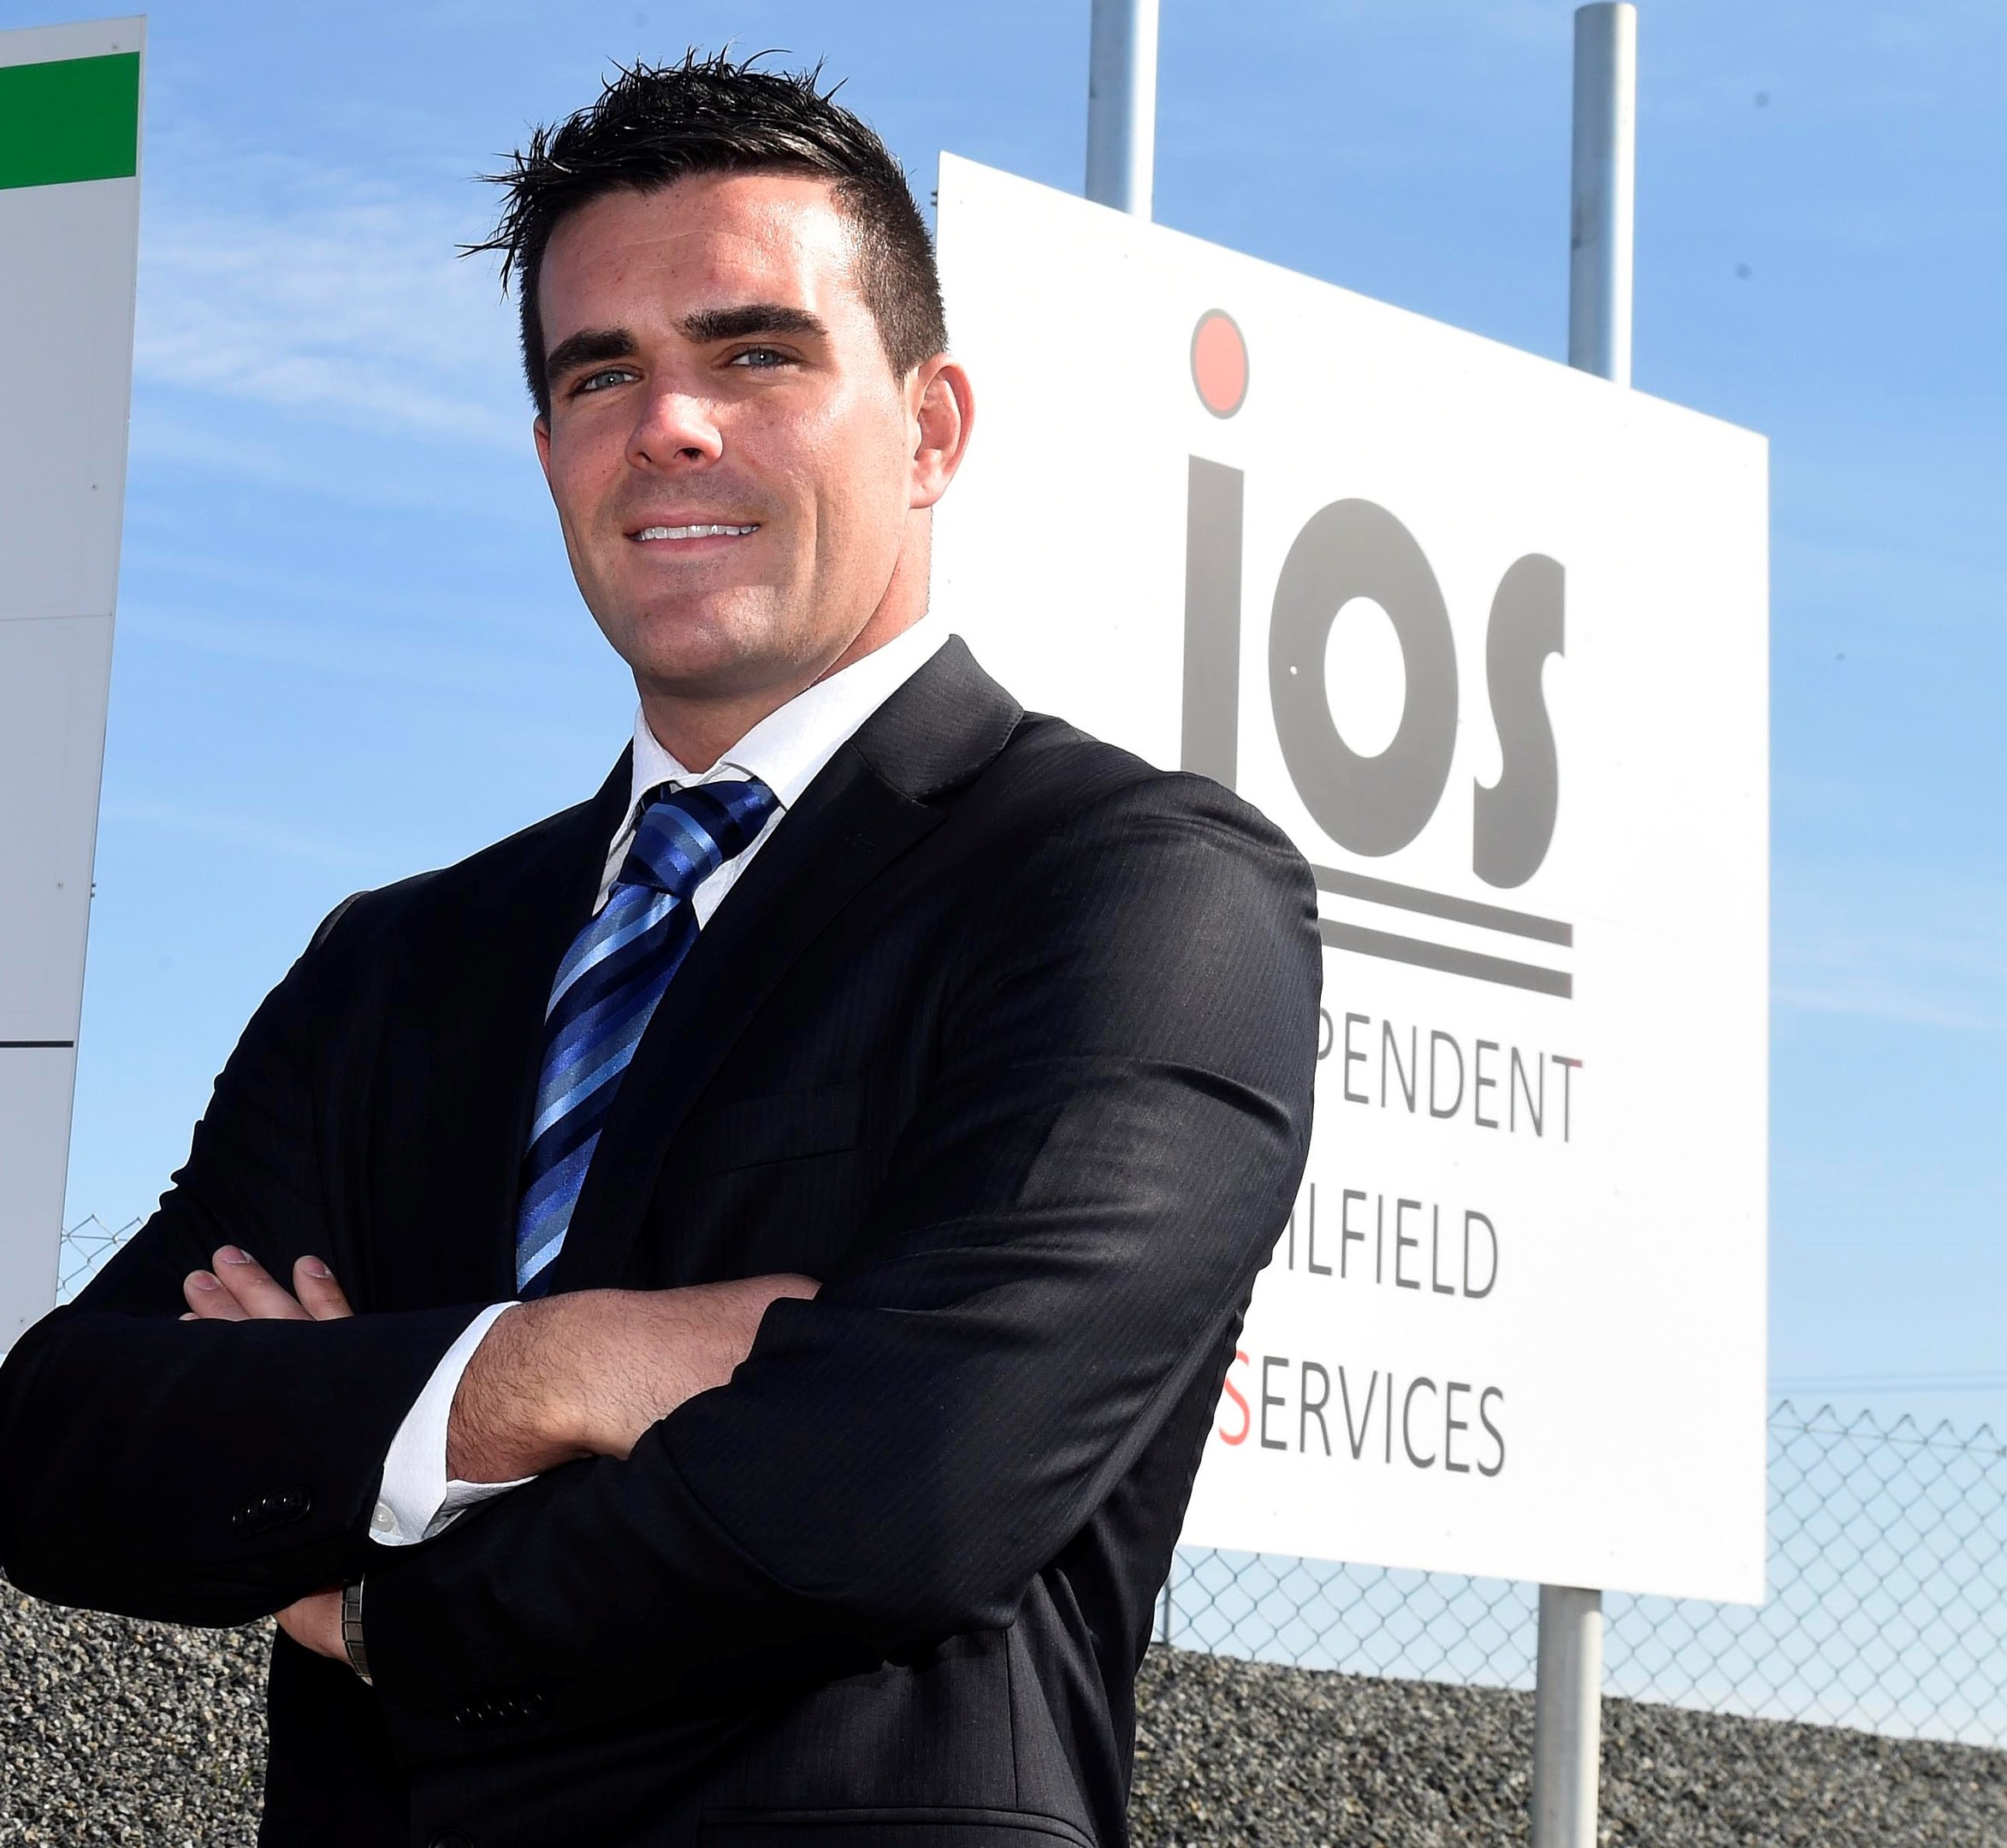 IOS outlines plans for £5.5m investment in north-east